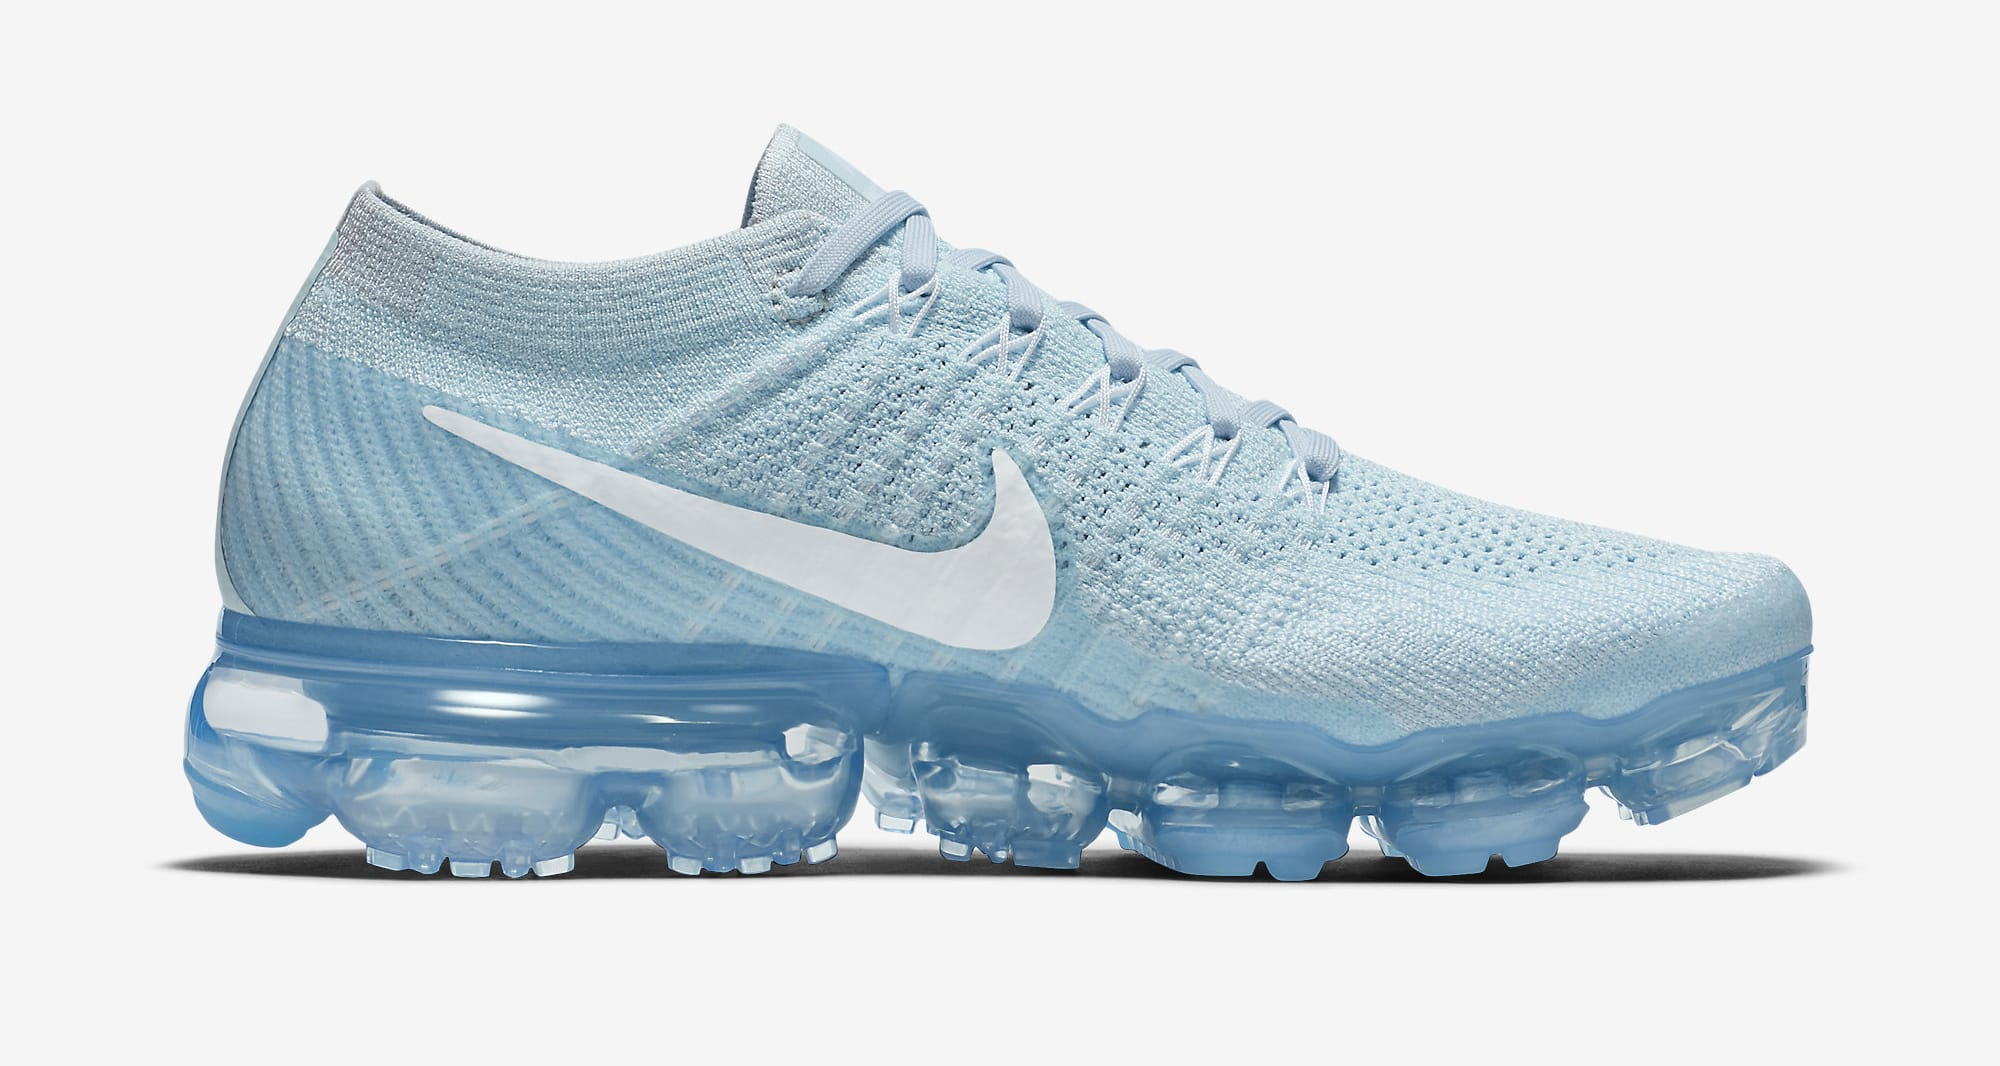 aa5cfded9172 Buy Nike Cheap Air Vapormax Flyknit Running Shoes Sale Online 2018